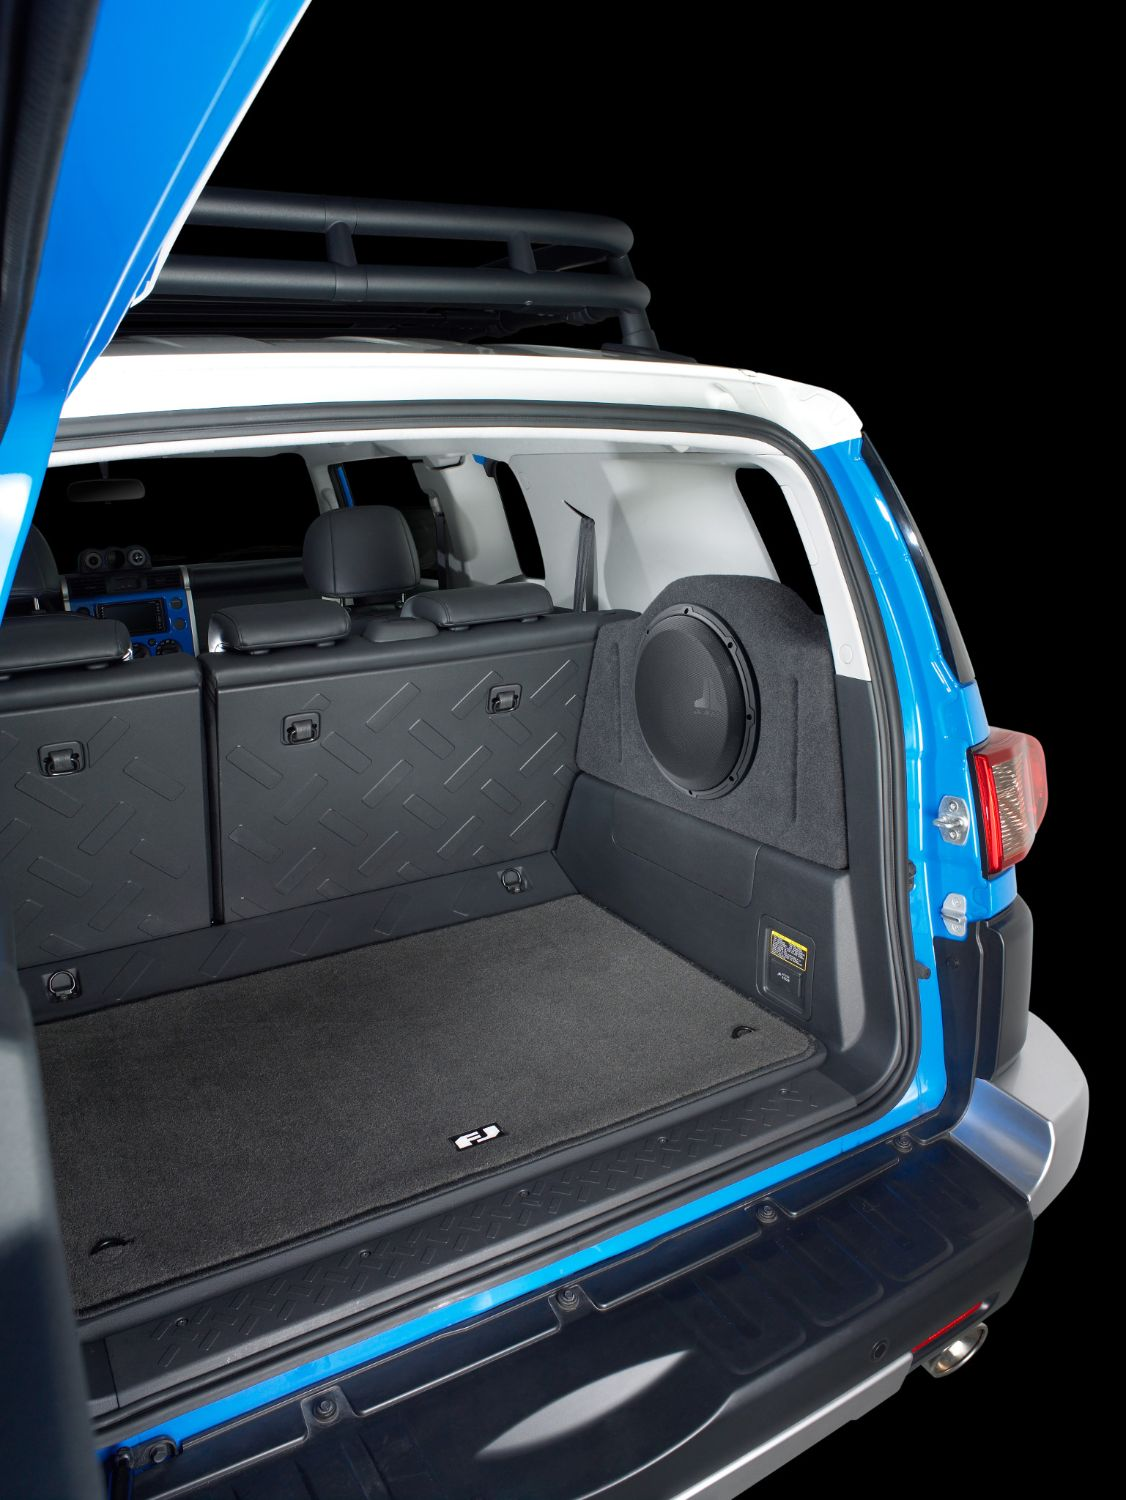 SB-T-FJ-12W1v3 Stealthbox Installed in Vehicle